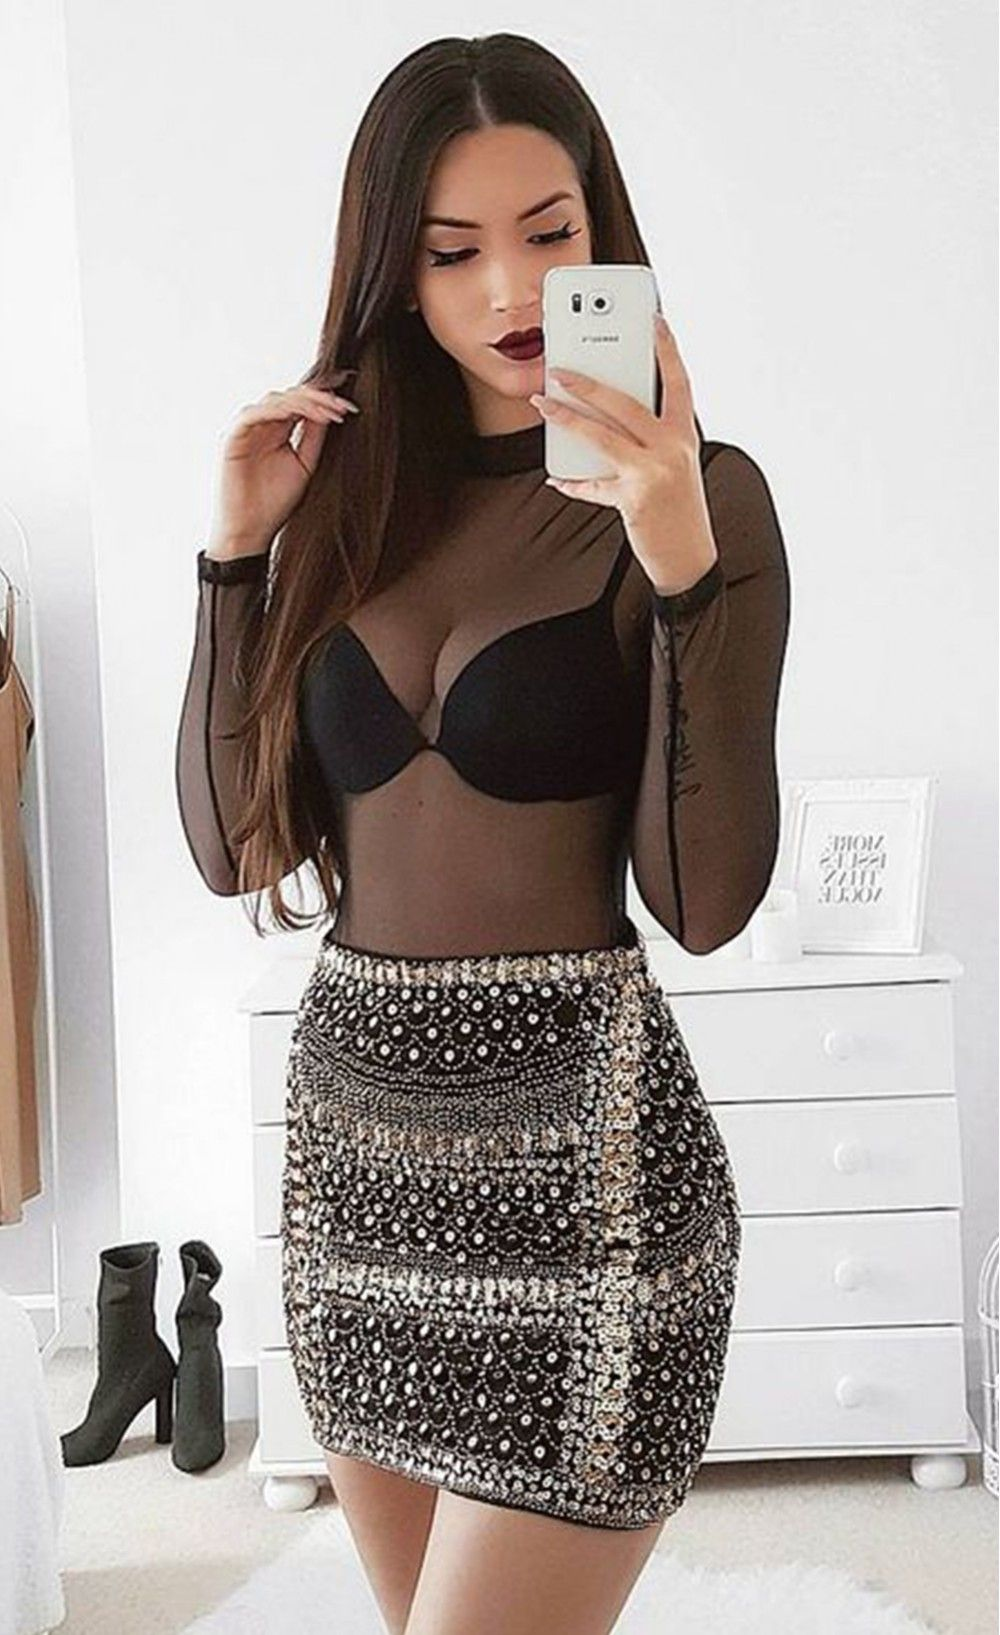 98cd6b1f96 Top| Blouse| Bodysuit| Black| Sheer| See through| High neck| Tucked in|  Bra| Long sleeve| Skirt| Mini| Embellished| Pearl| White| Silver| Summer|  Spring| ...